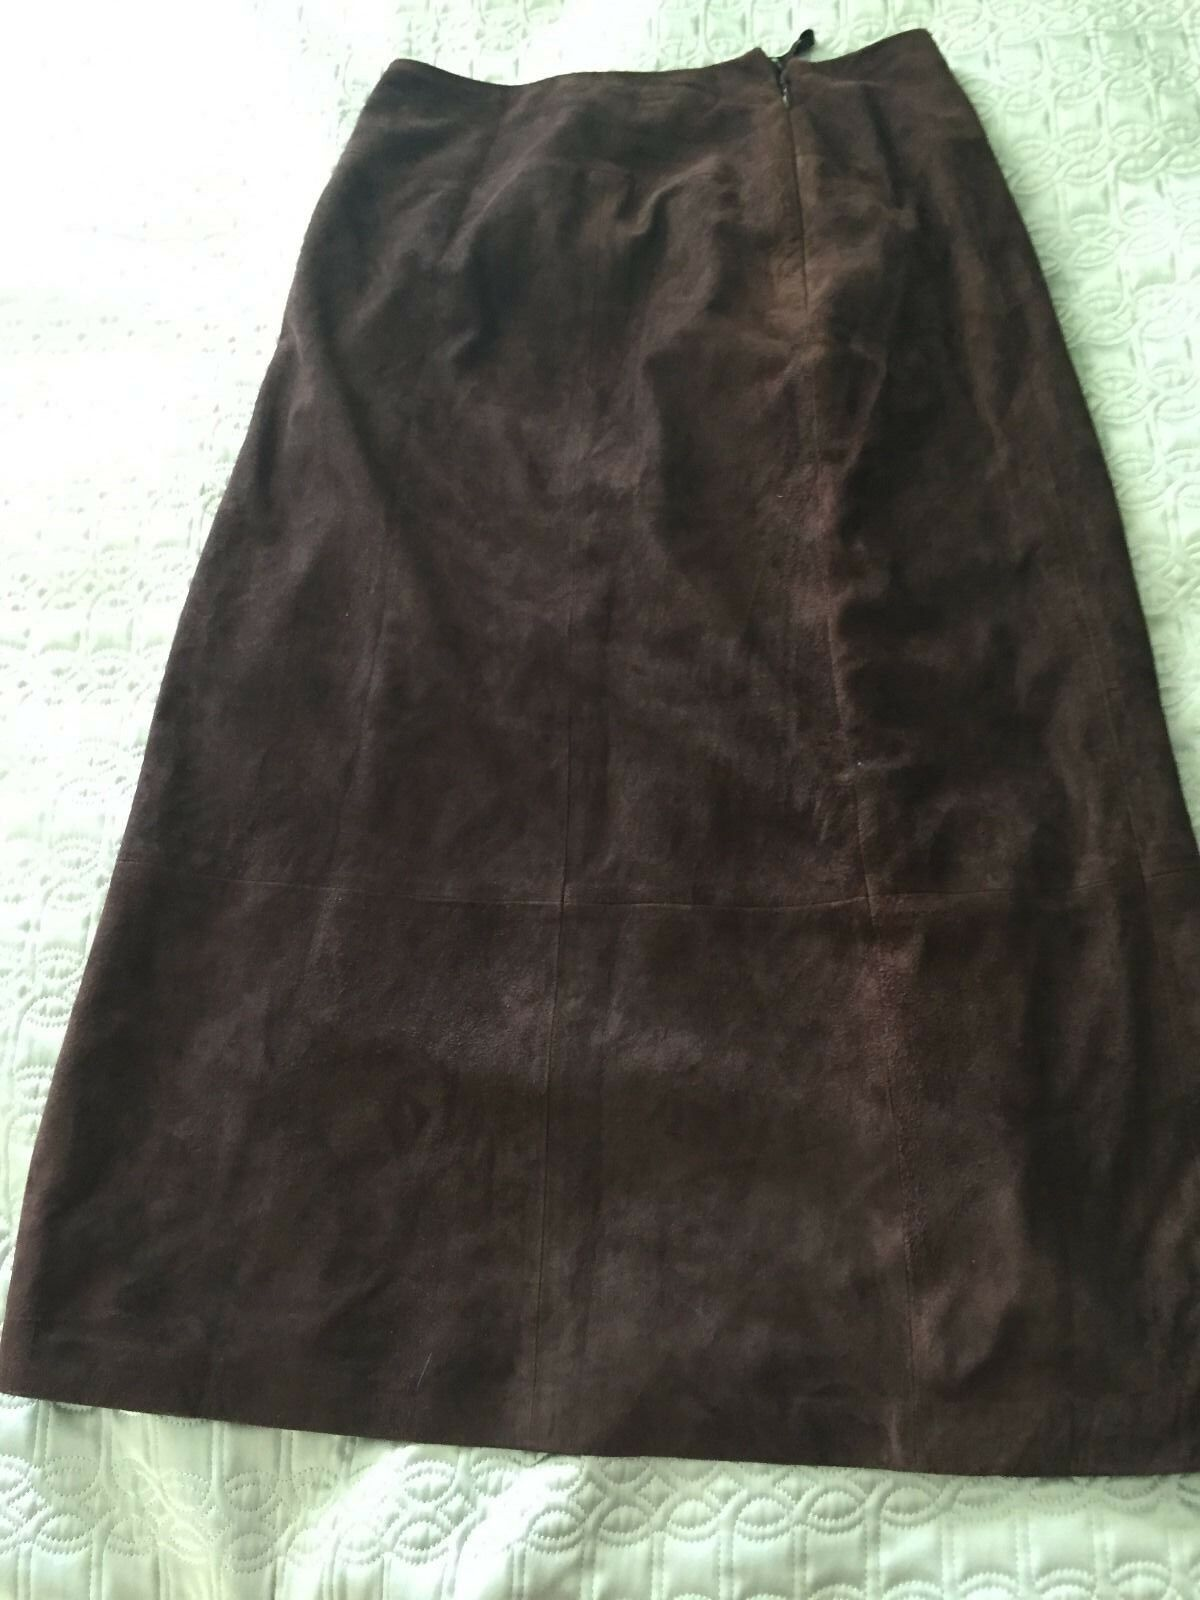 Talbots Petite Women's Skirt Sz 8 Long Brown Suede Leather Lined Skirt